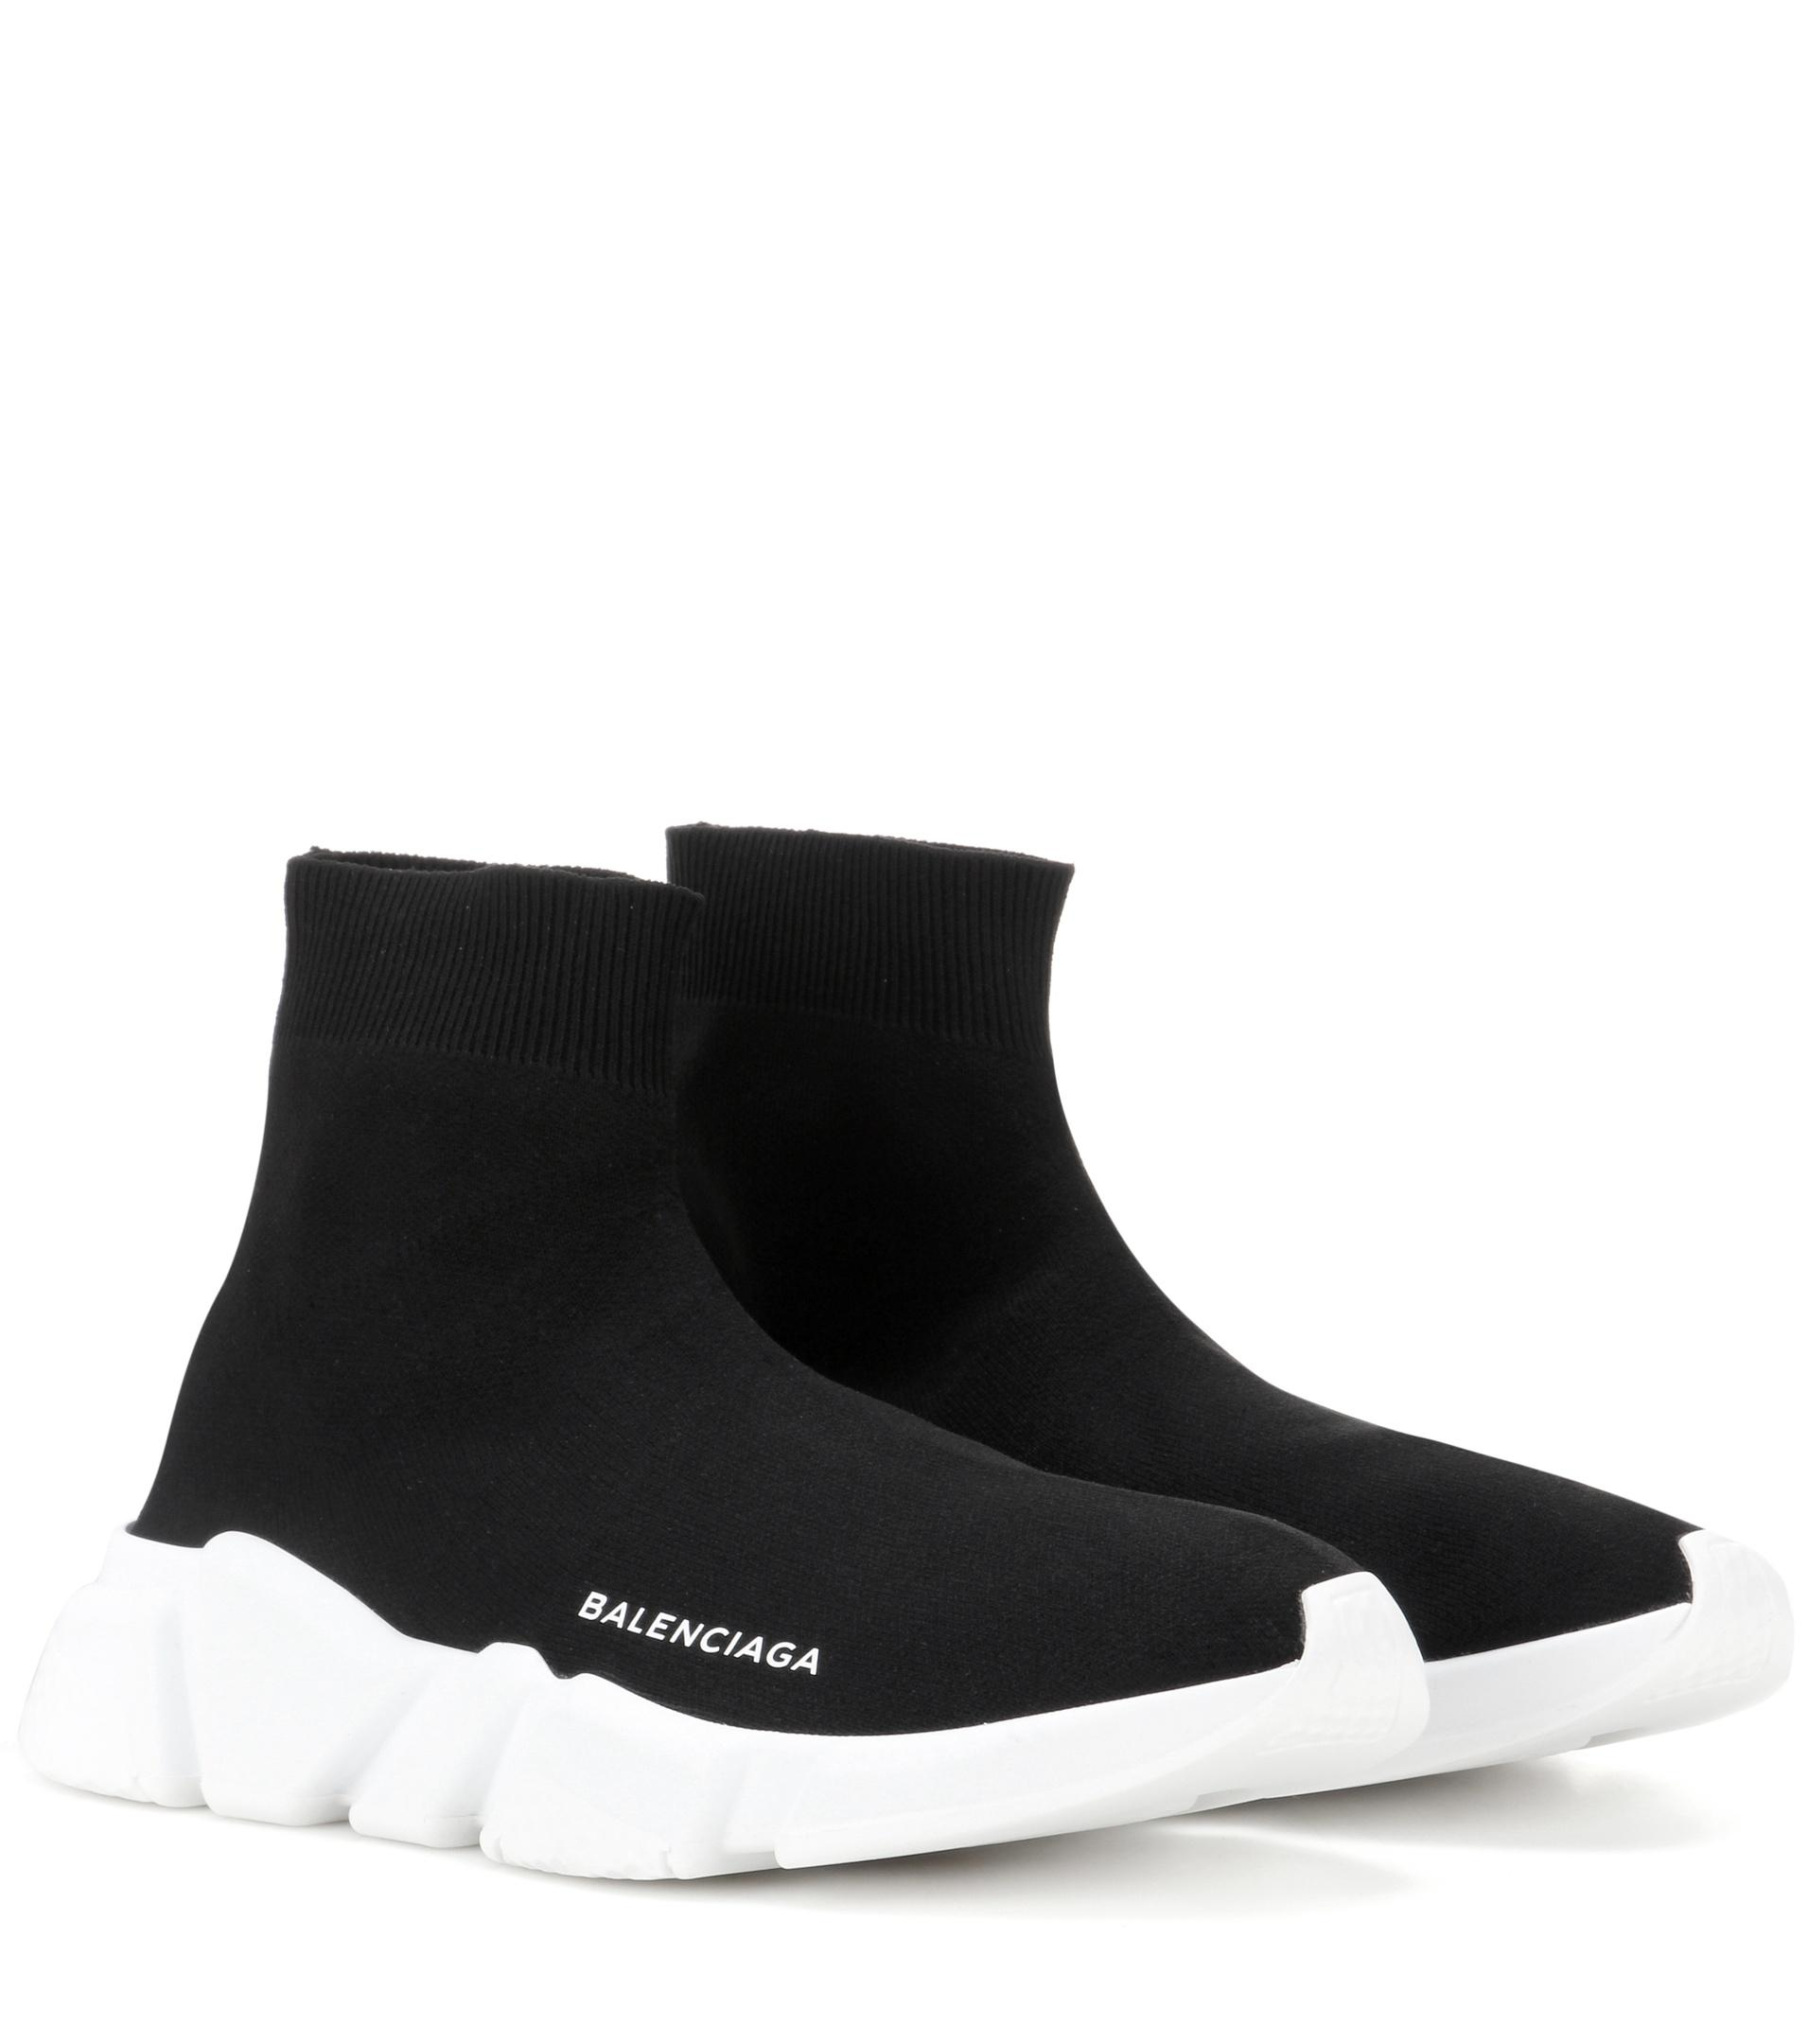 Black Balenciaga Sneakers Lyst Speed Stretch In vnX0nFqWSP